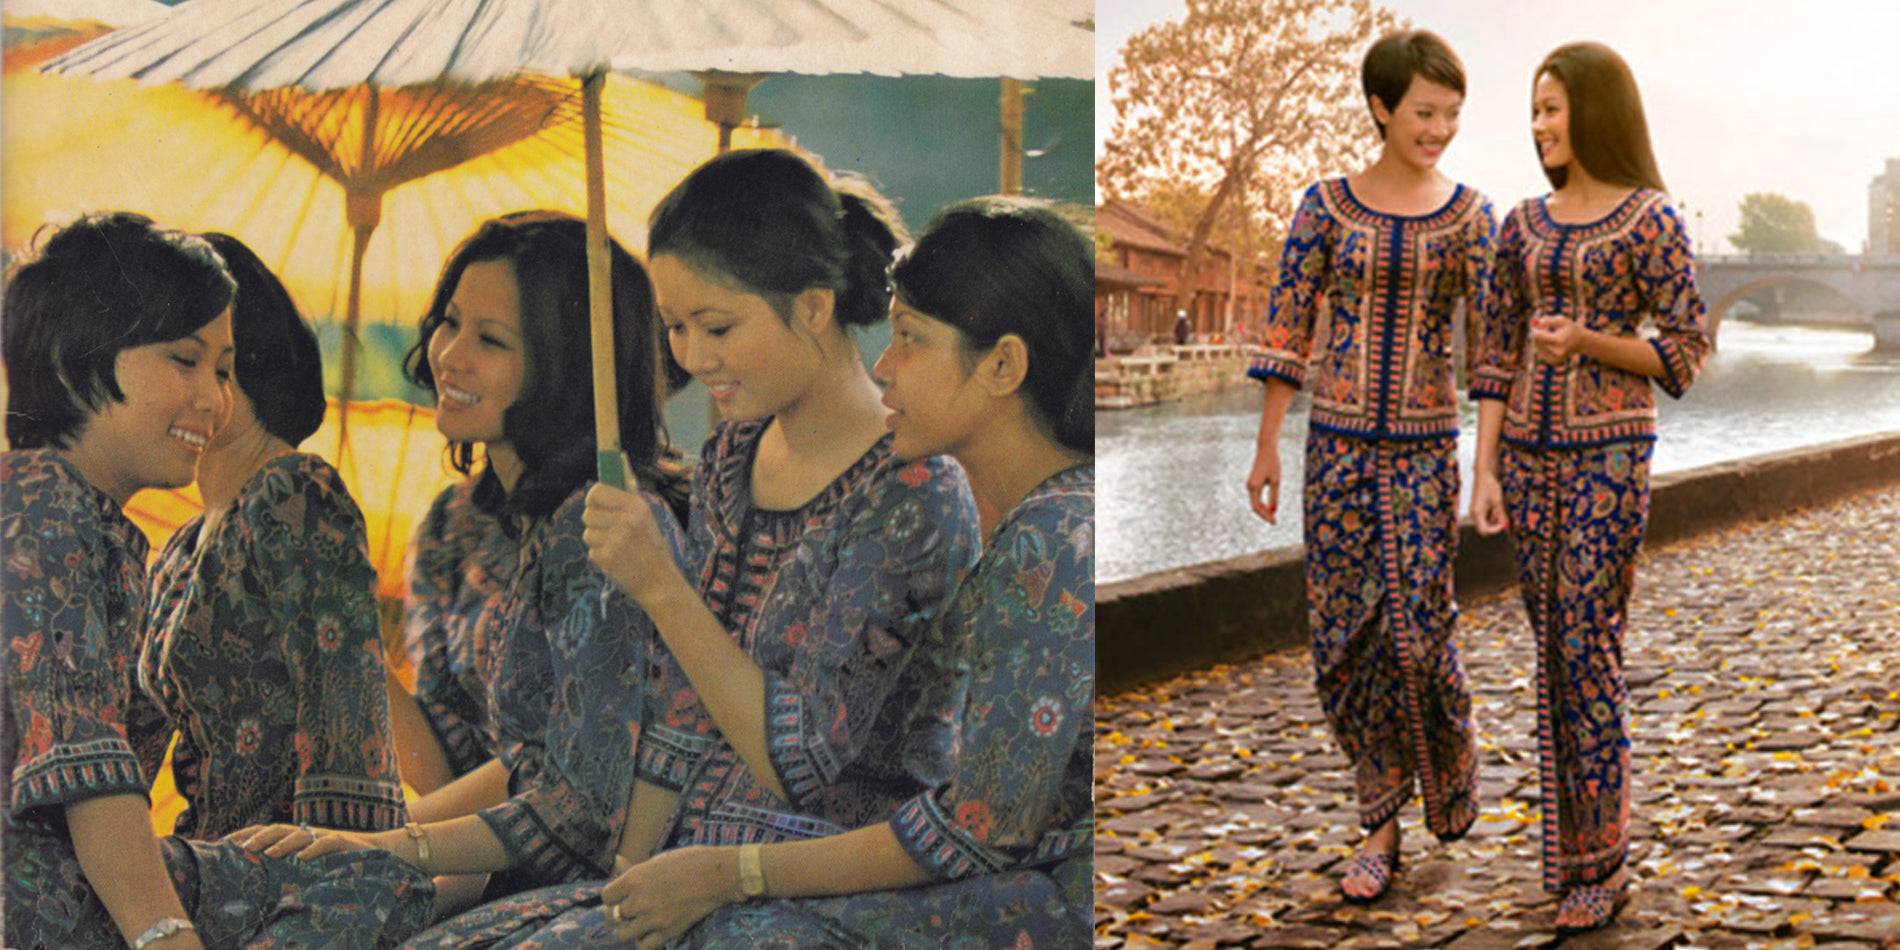 Fashion of 1970s - The Separation Of Singapore And Malaysia In Turn Led To The Split Of The Malaysian Singapore Airways Msa Leading To The Establishment Of Singapore